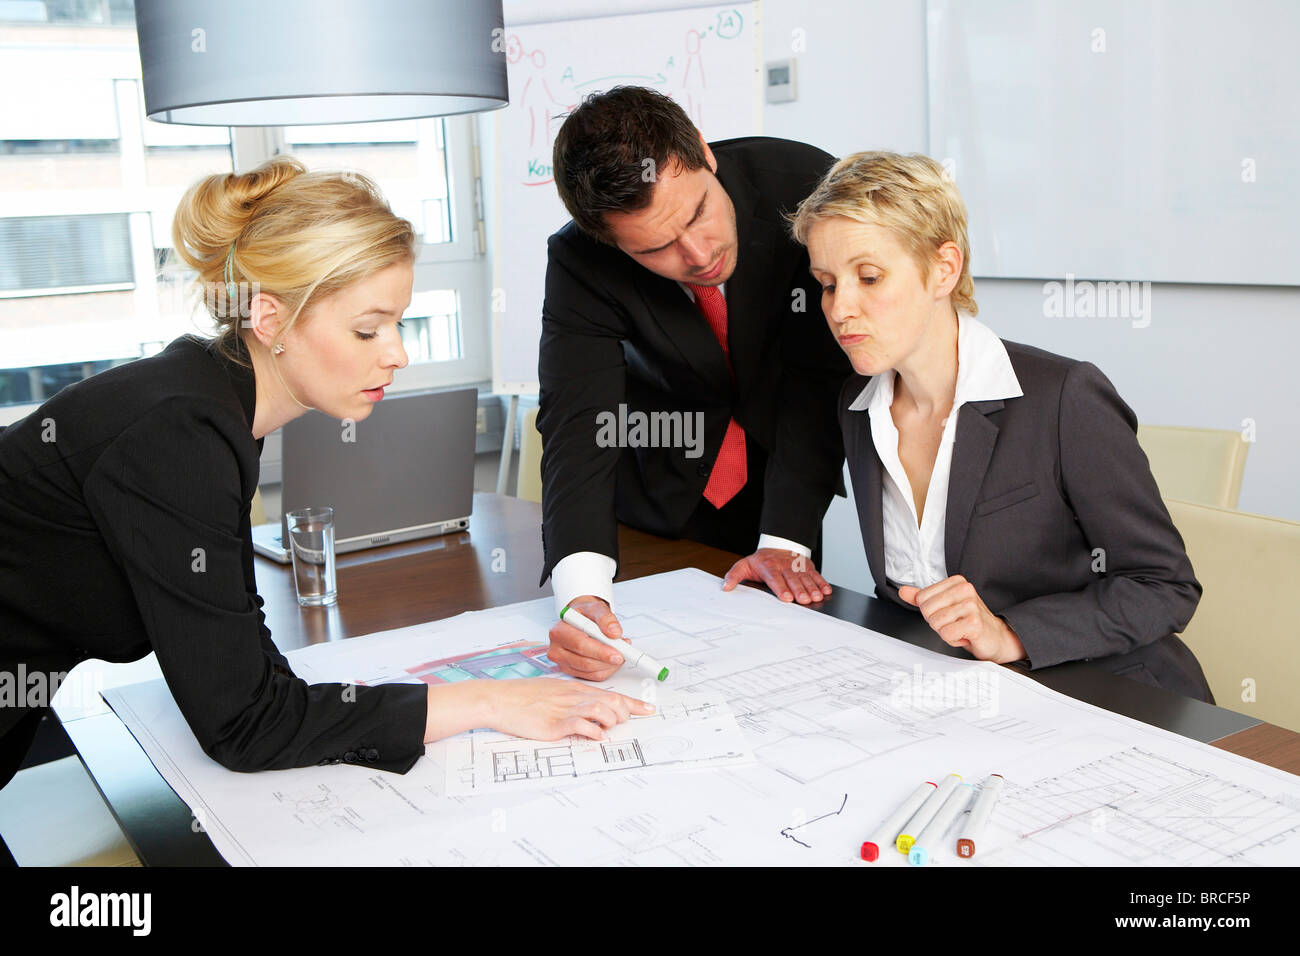 Three colleagues having a business conference - Stock Image